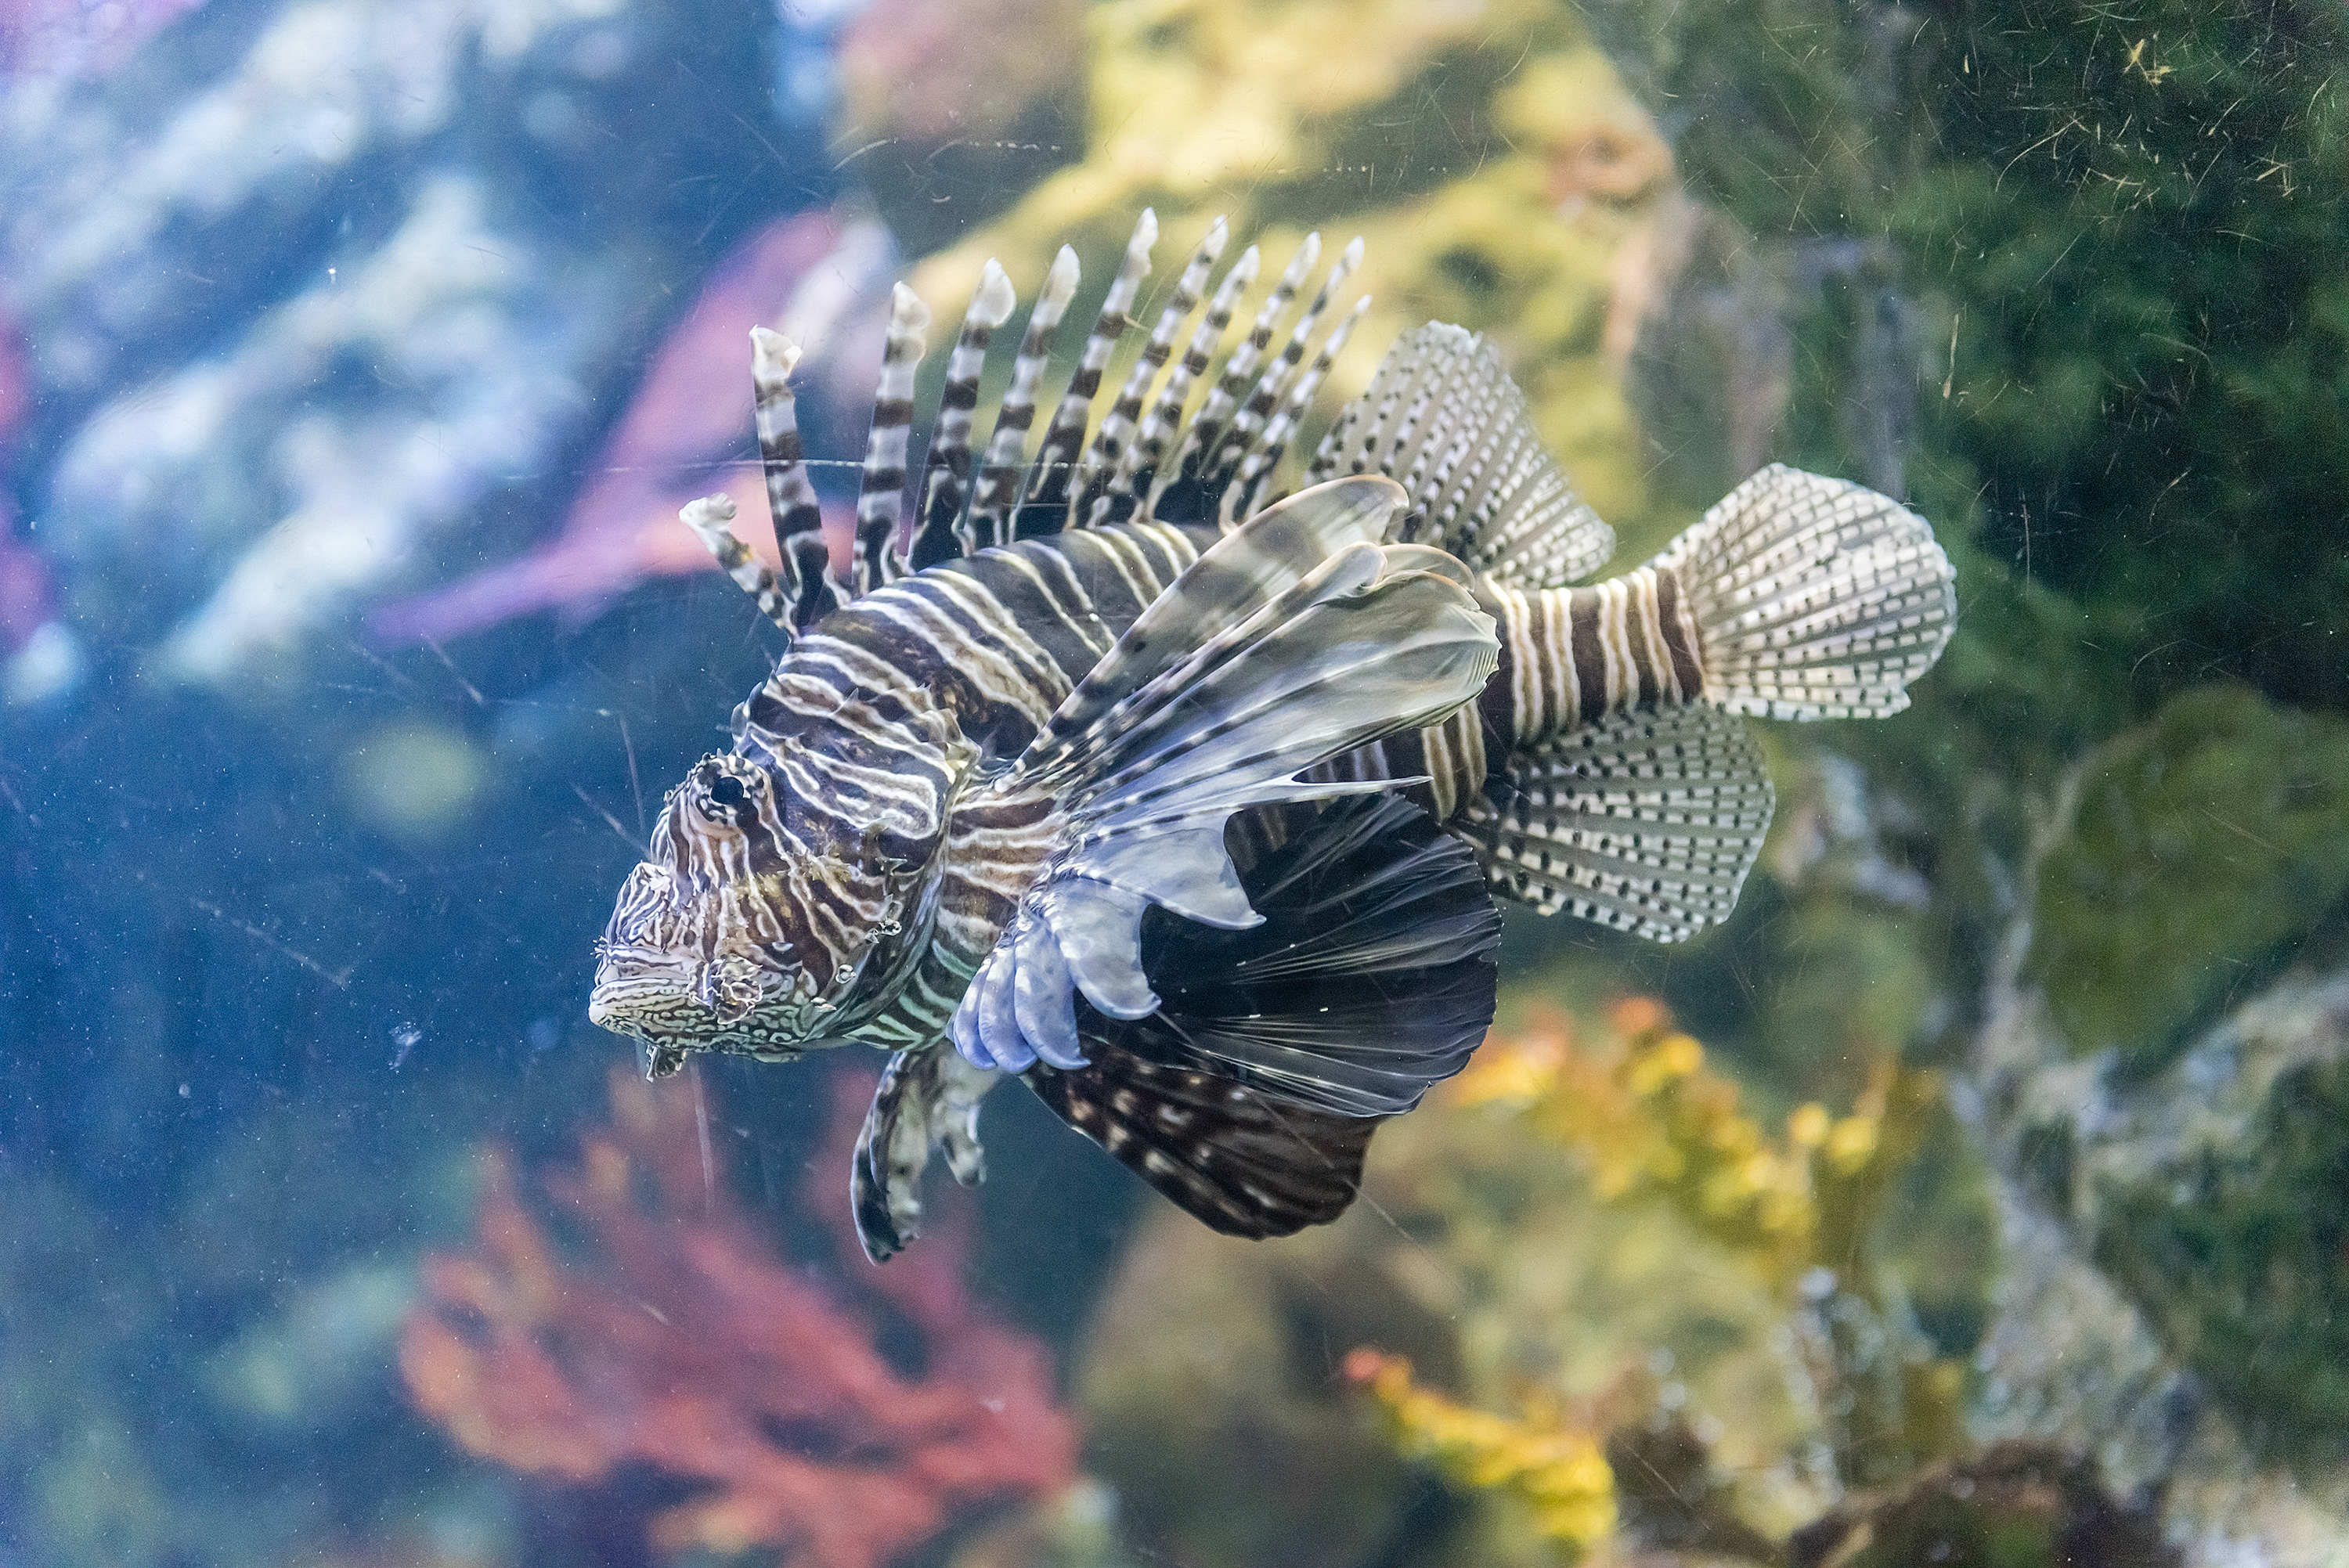 Closeup of a lionfish in aquarium environment